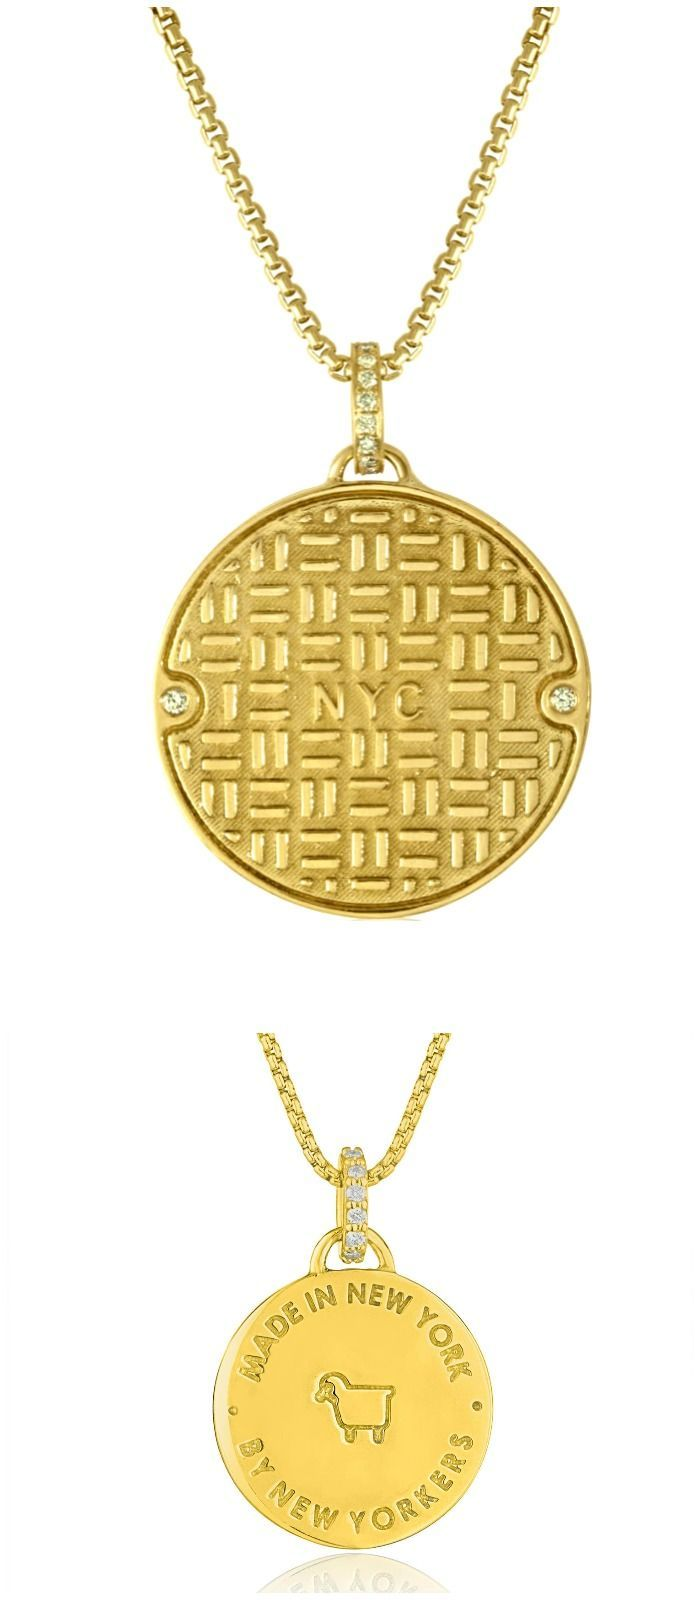 Julie Lamb's NYC Manhole Cover in yellow gold with diamonds! Handmade in NYC...